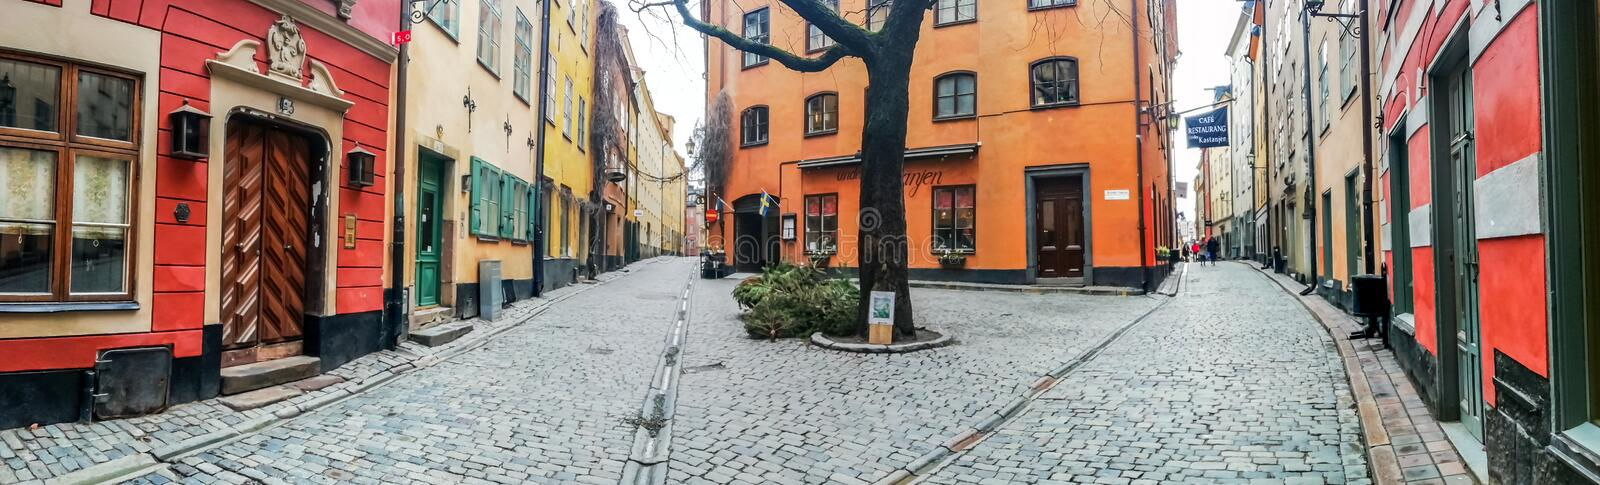 Kindstugatan square, Stadsholmen island, Gamla Stan district, Stockholm, Sweden. Panoramic view of Kindstugatan square, with a chestnut tree at the center royalty free stock photo